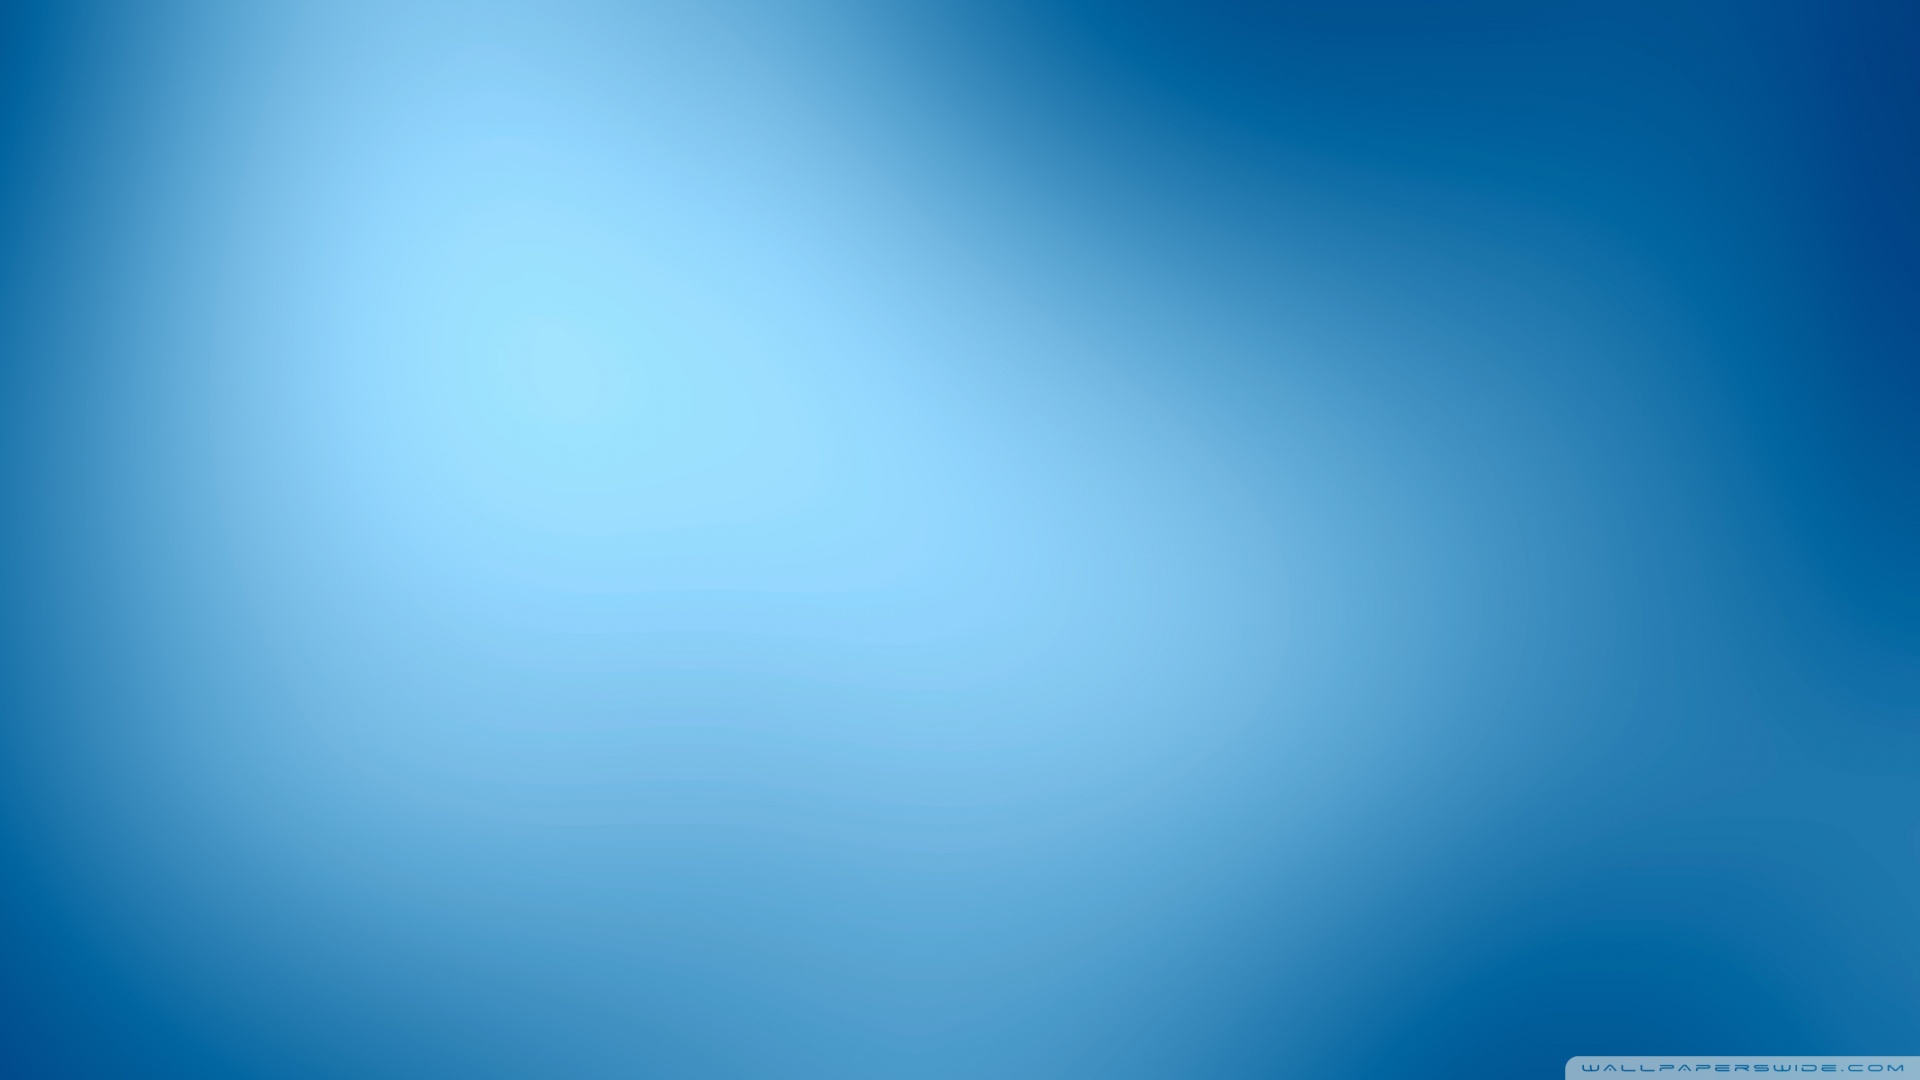 simple_blue_background-wallpaper-1920x1080